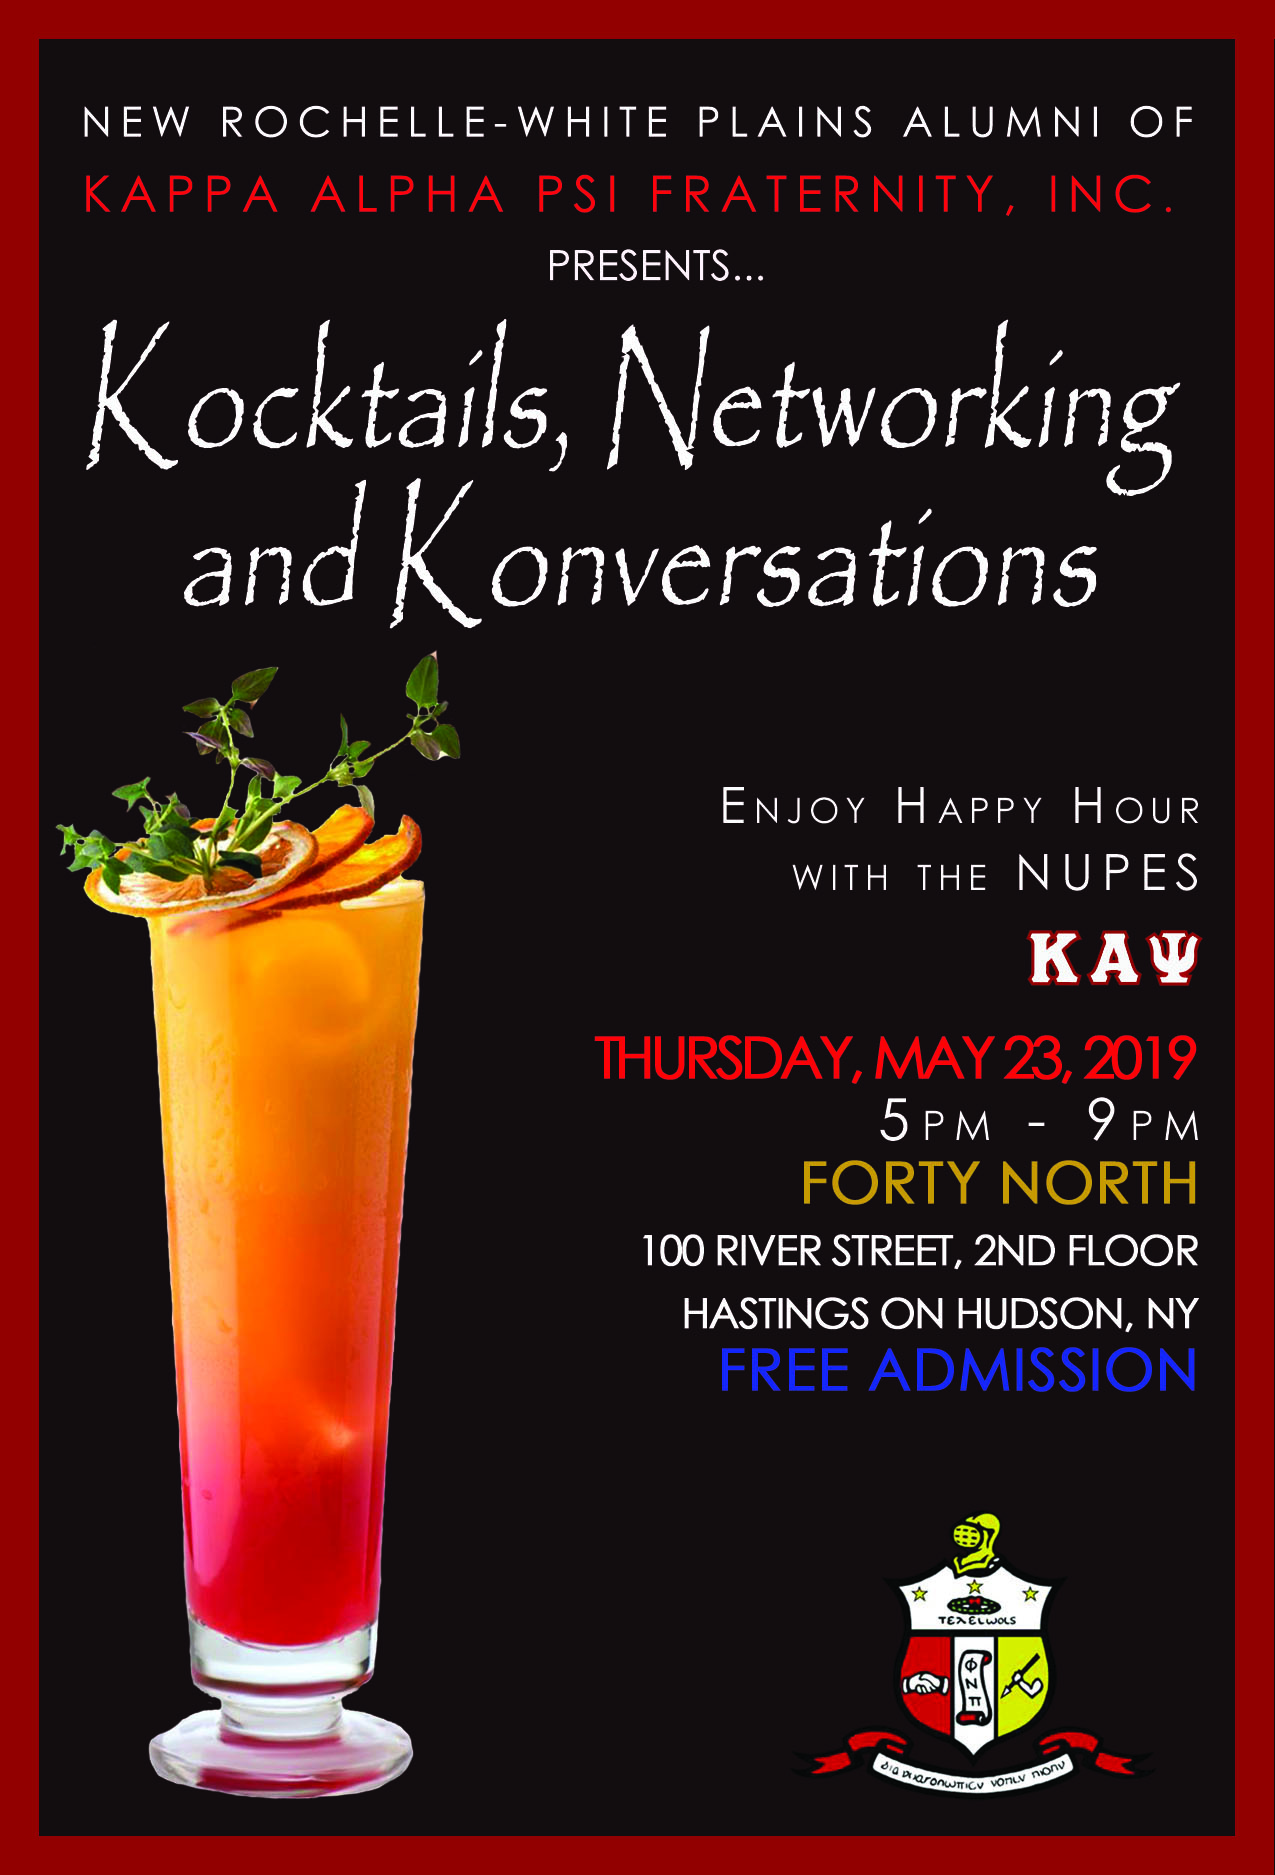 Lakeview.Koctails.Networking.Konversations.5.23.2019.Revised